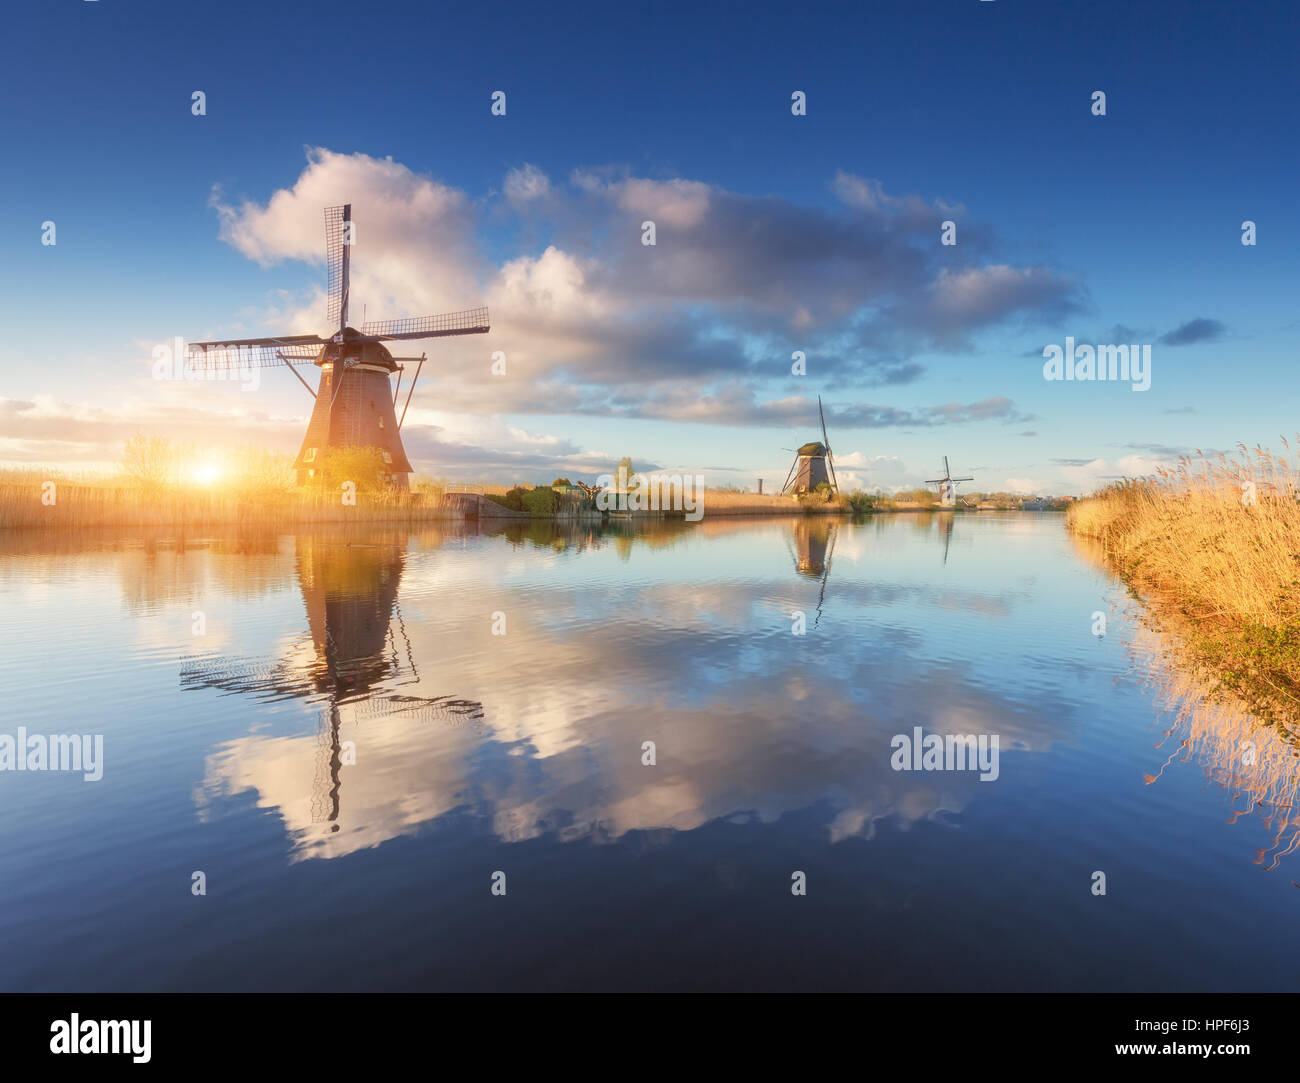 Windmills at sunrise. Rustic landscape with amazing dutch windmills near the water canals with blue sky and clouds Stock Photo